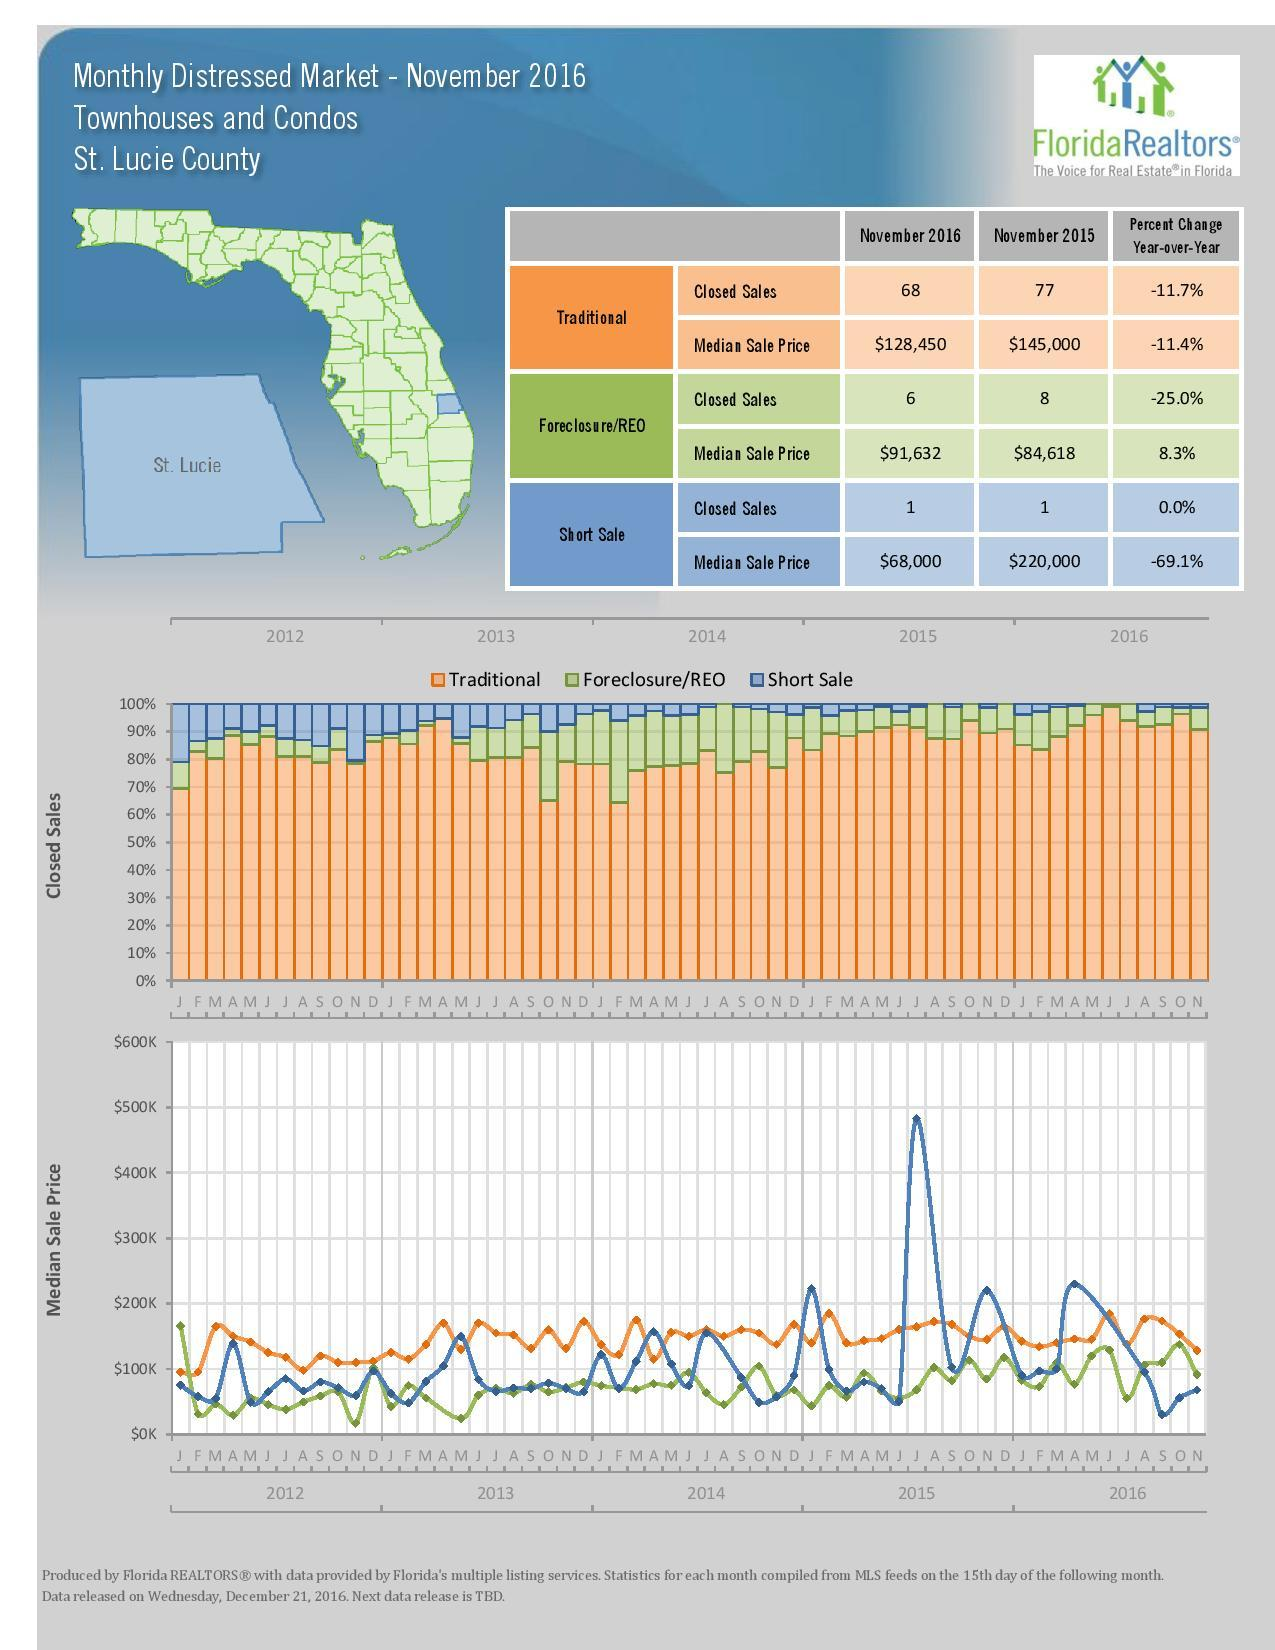 November 2016 Local Market Update, St. Lucie, FL (Florida Realtors)